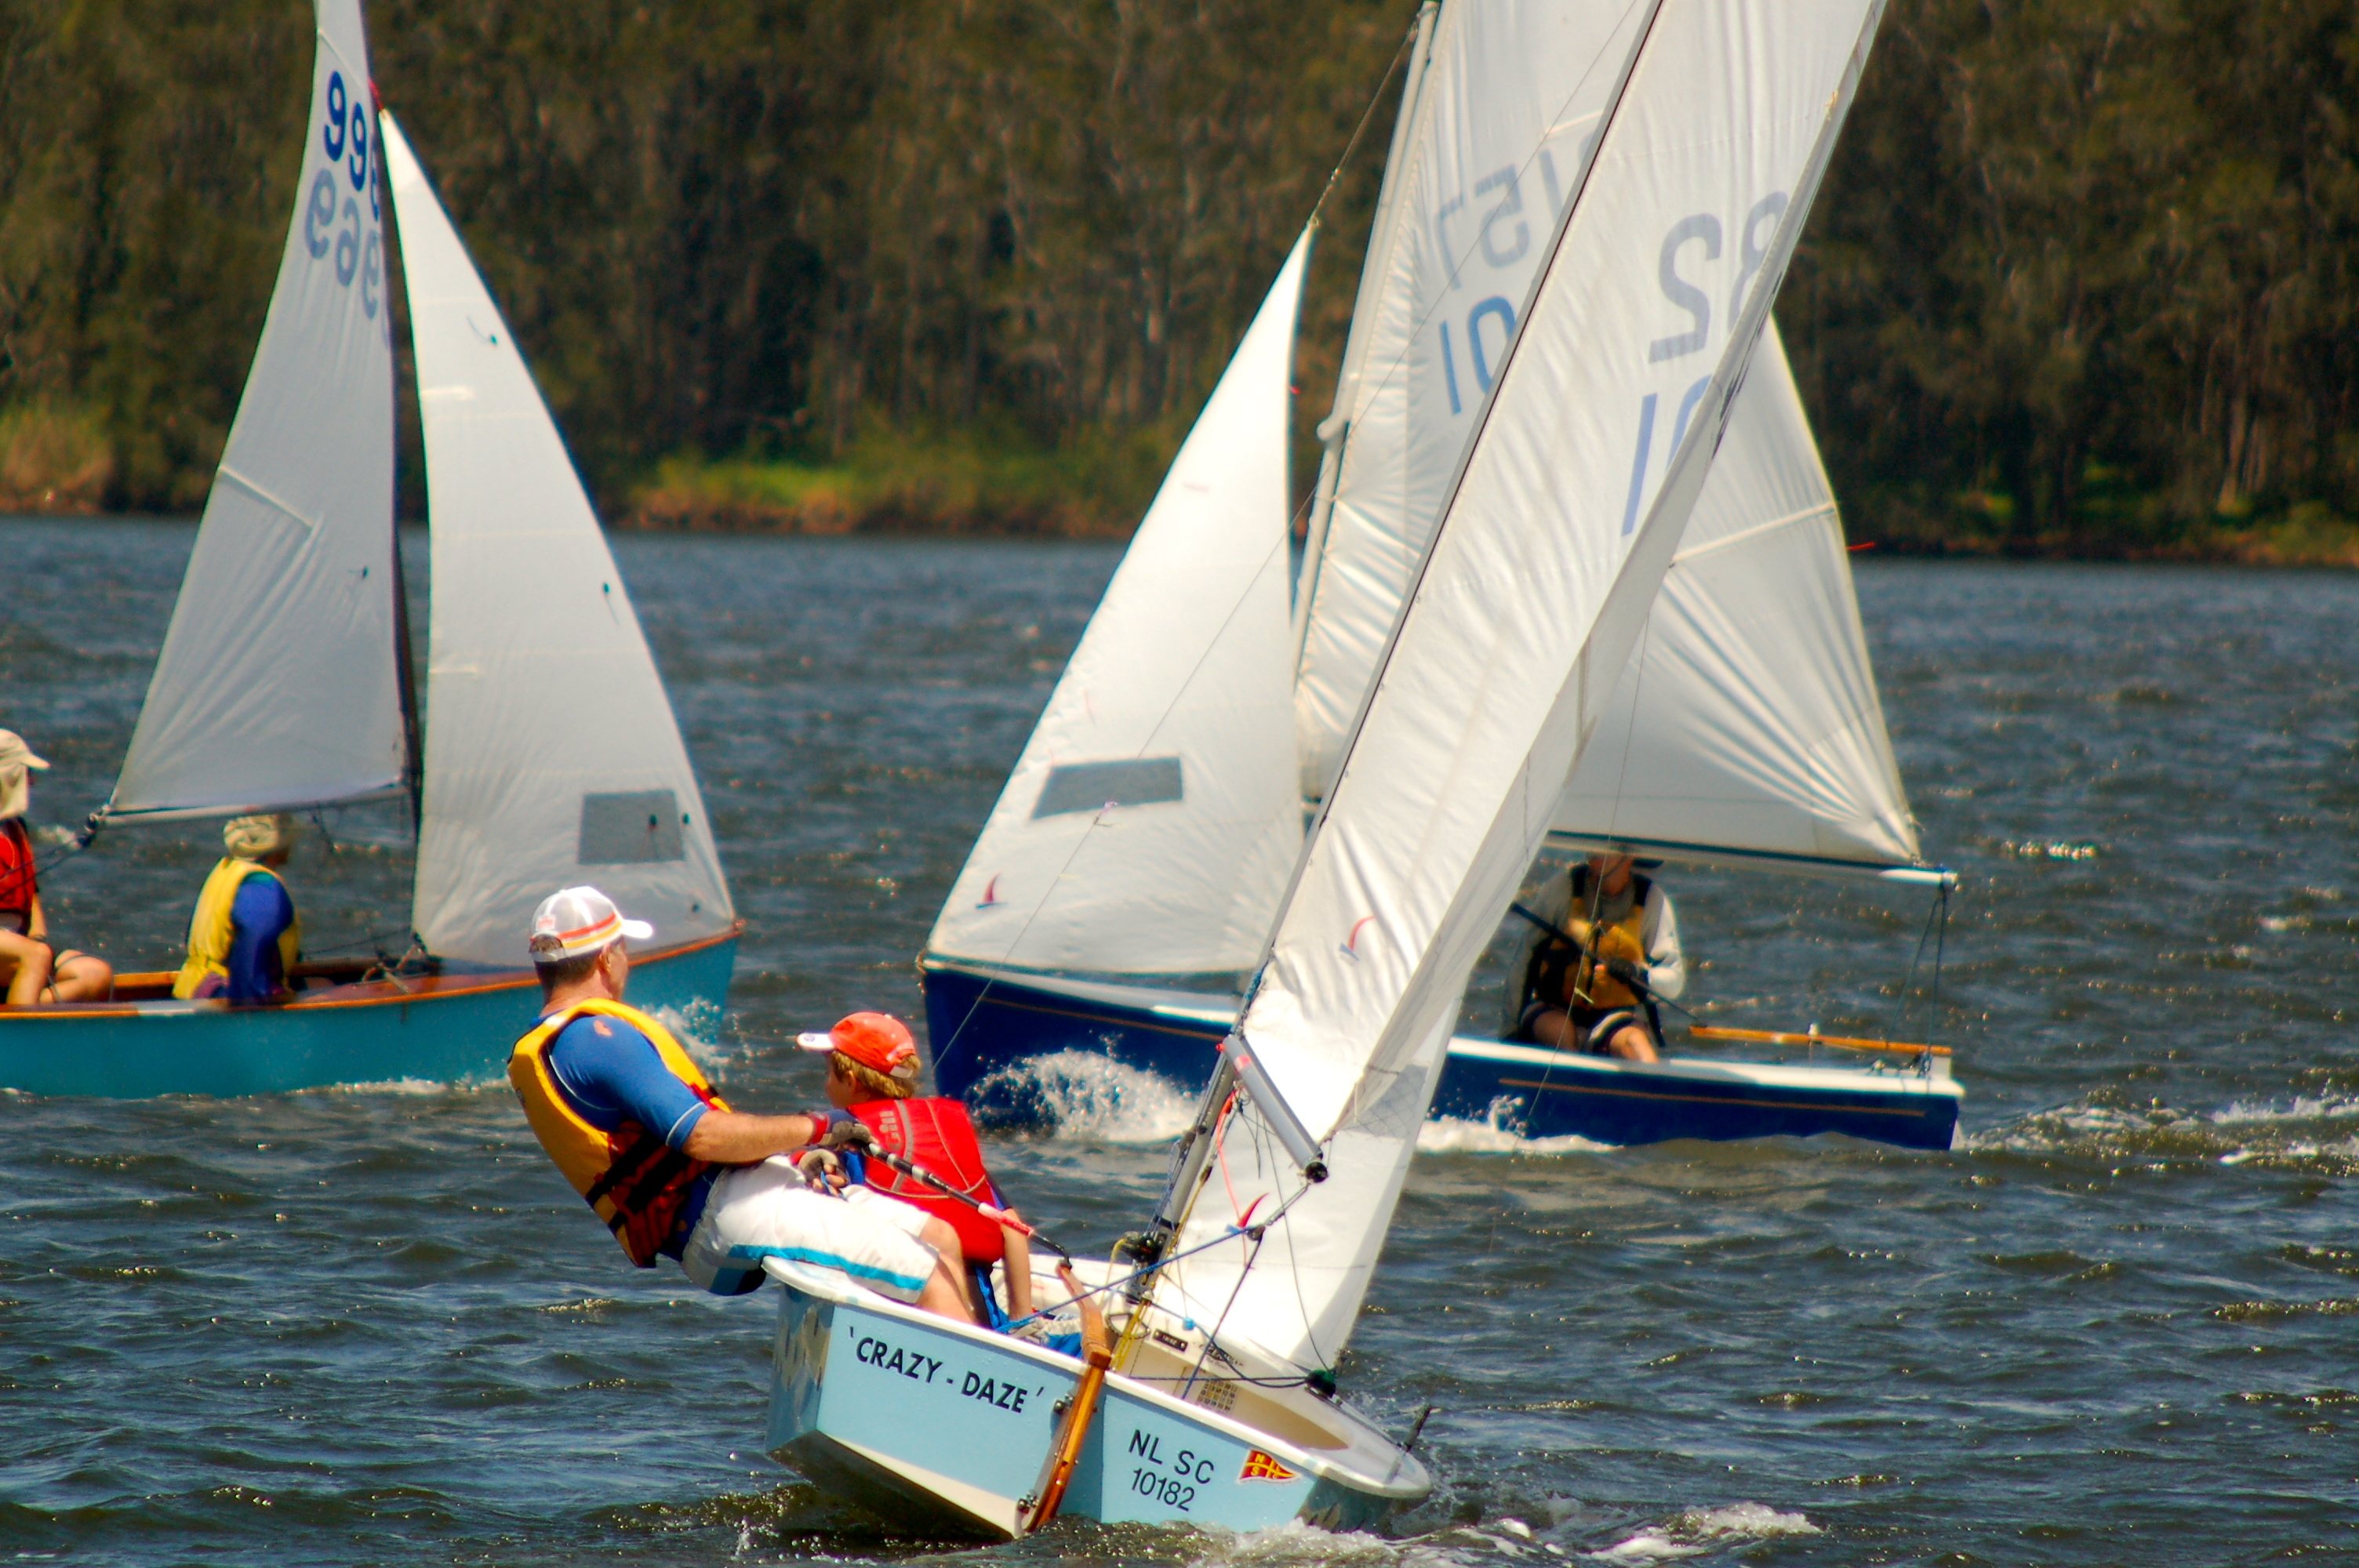 Heron Class Sailboats - Narrabeen Lake, Sydney